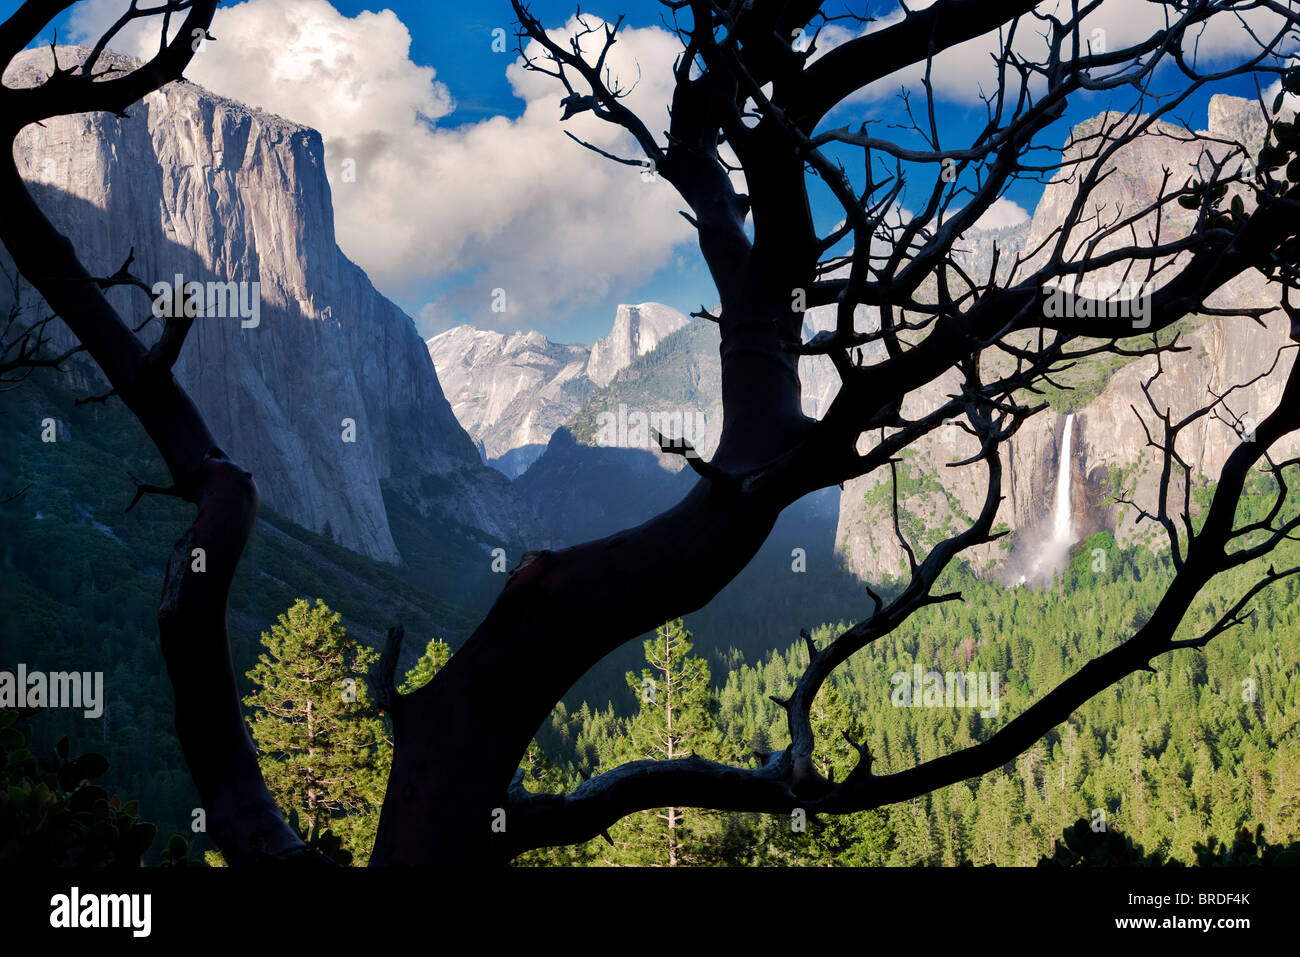 Yosemite Valley view from above Tunnel View Overlook as seen through manzanita bush.  Yosemite National Park, California - Stock Image